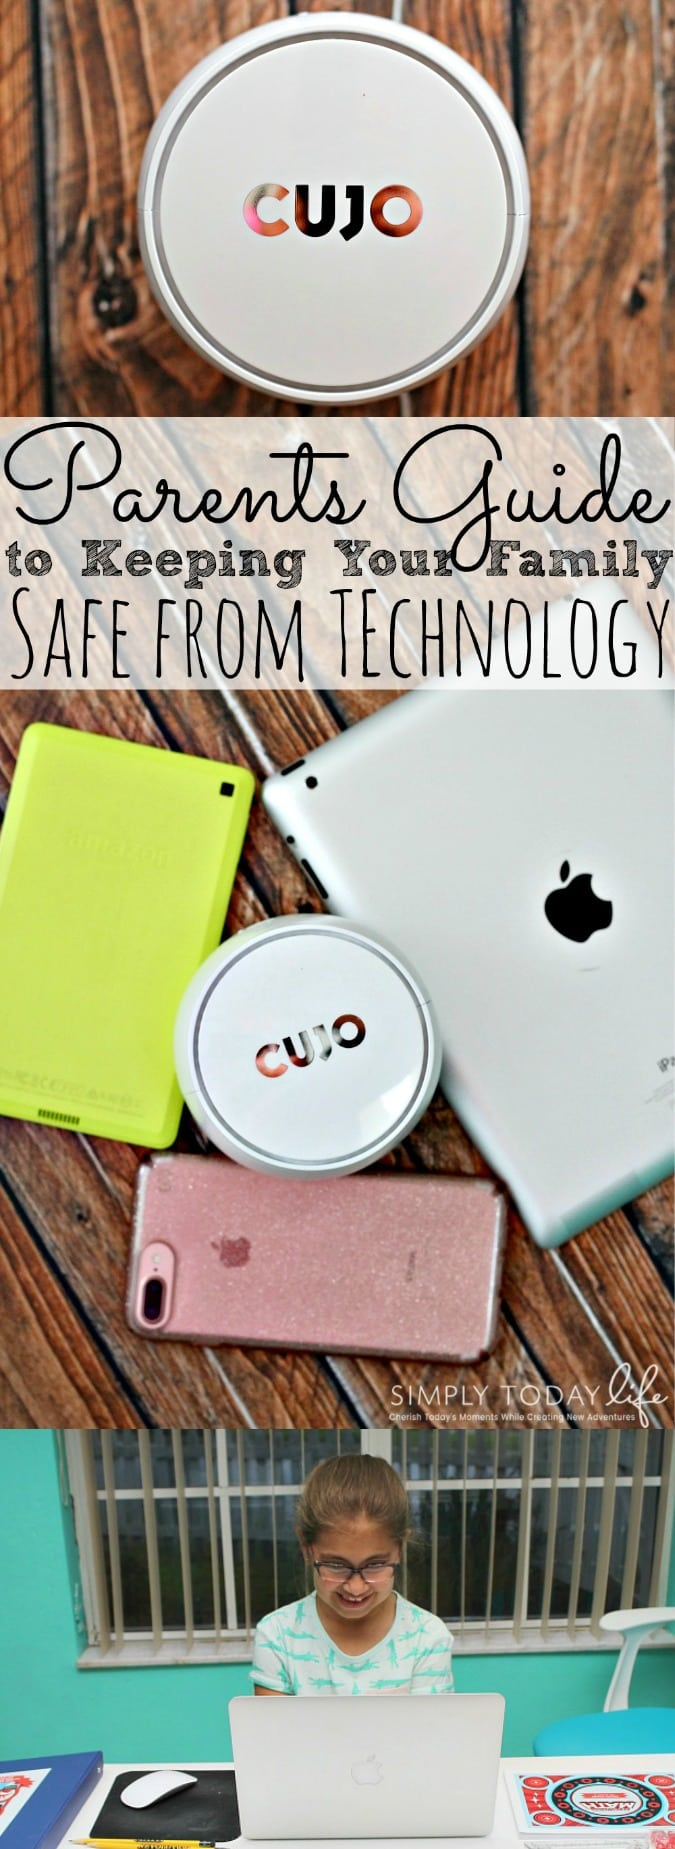 Parents Guide To Keeping Your Family Safe From Technology and Hackers- simplytodaylife.com